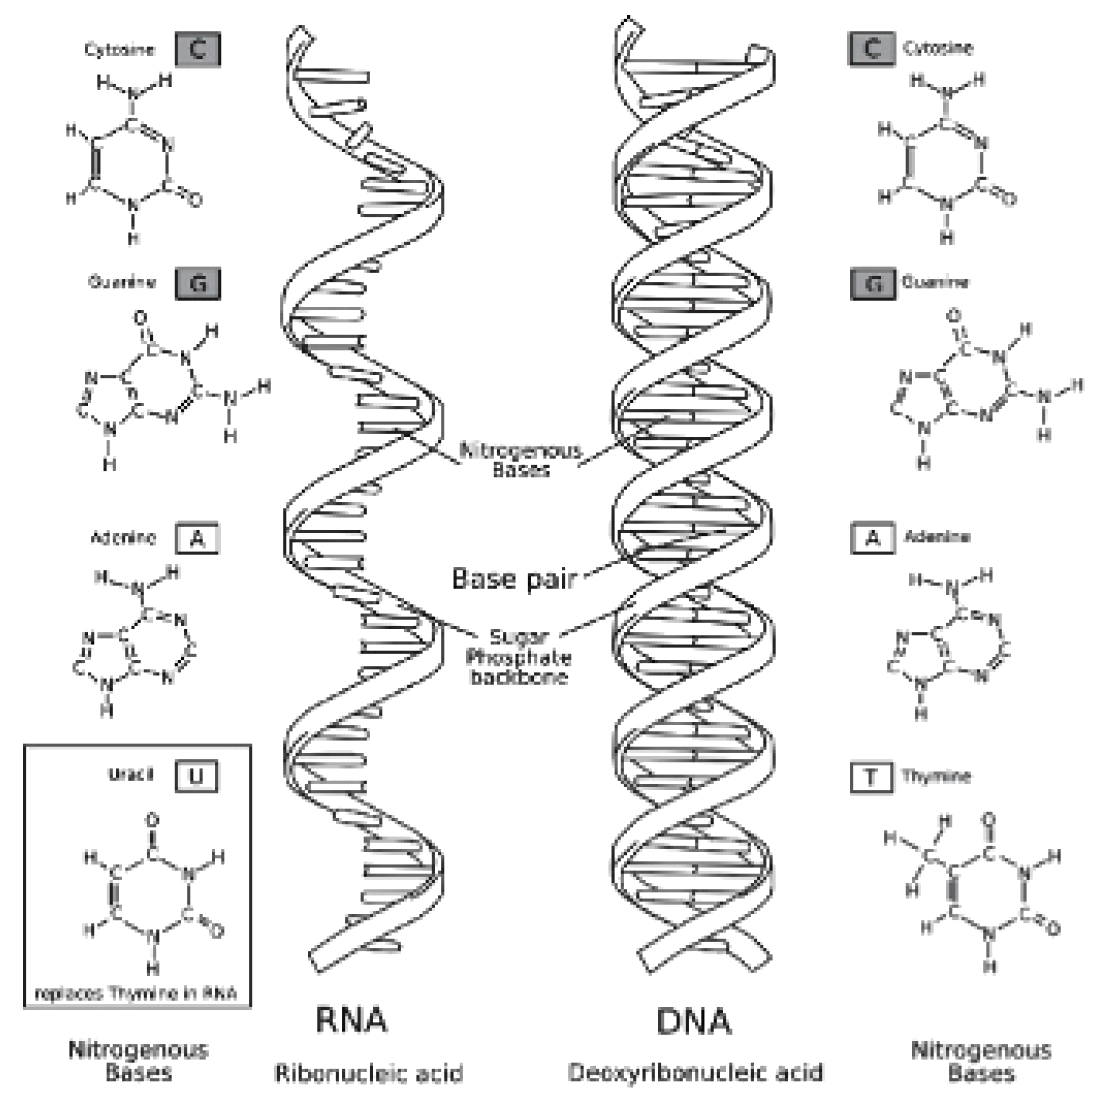 structure of dna worksheet free worksheets library download and print worksheets free on. Black Bedroom Furniture Sets. Home Design Ideas